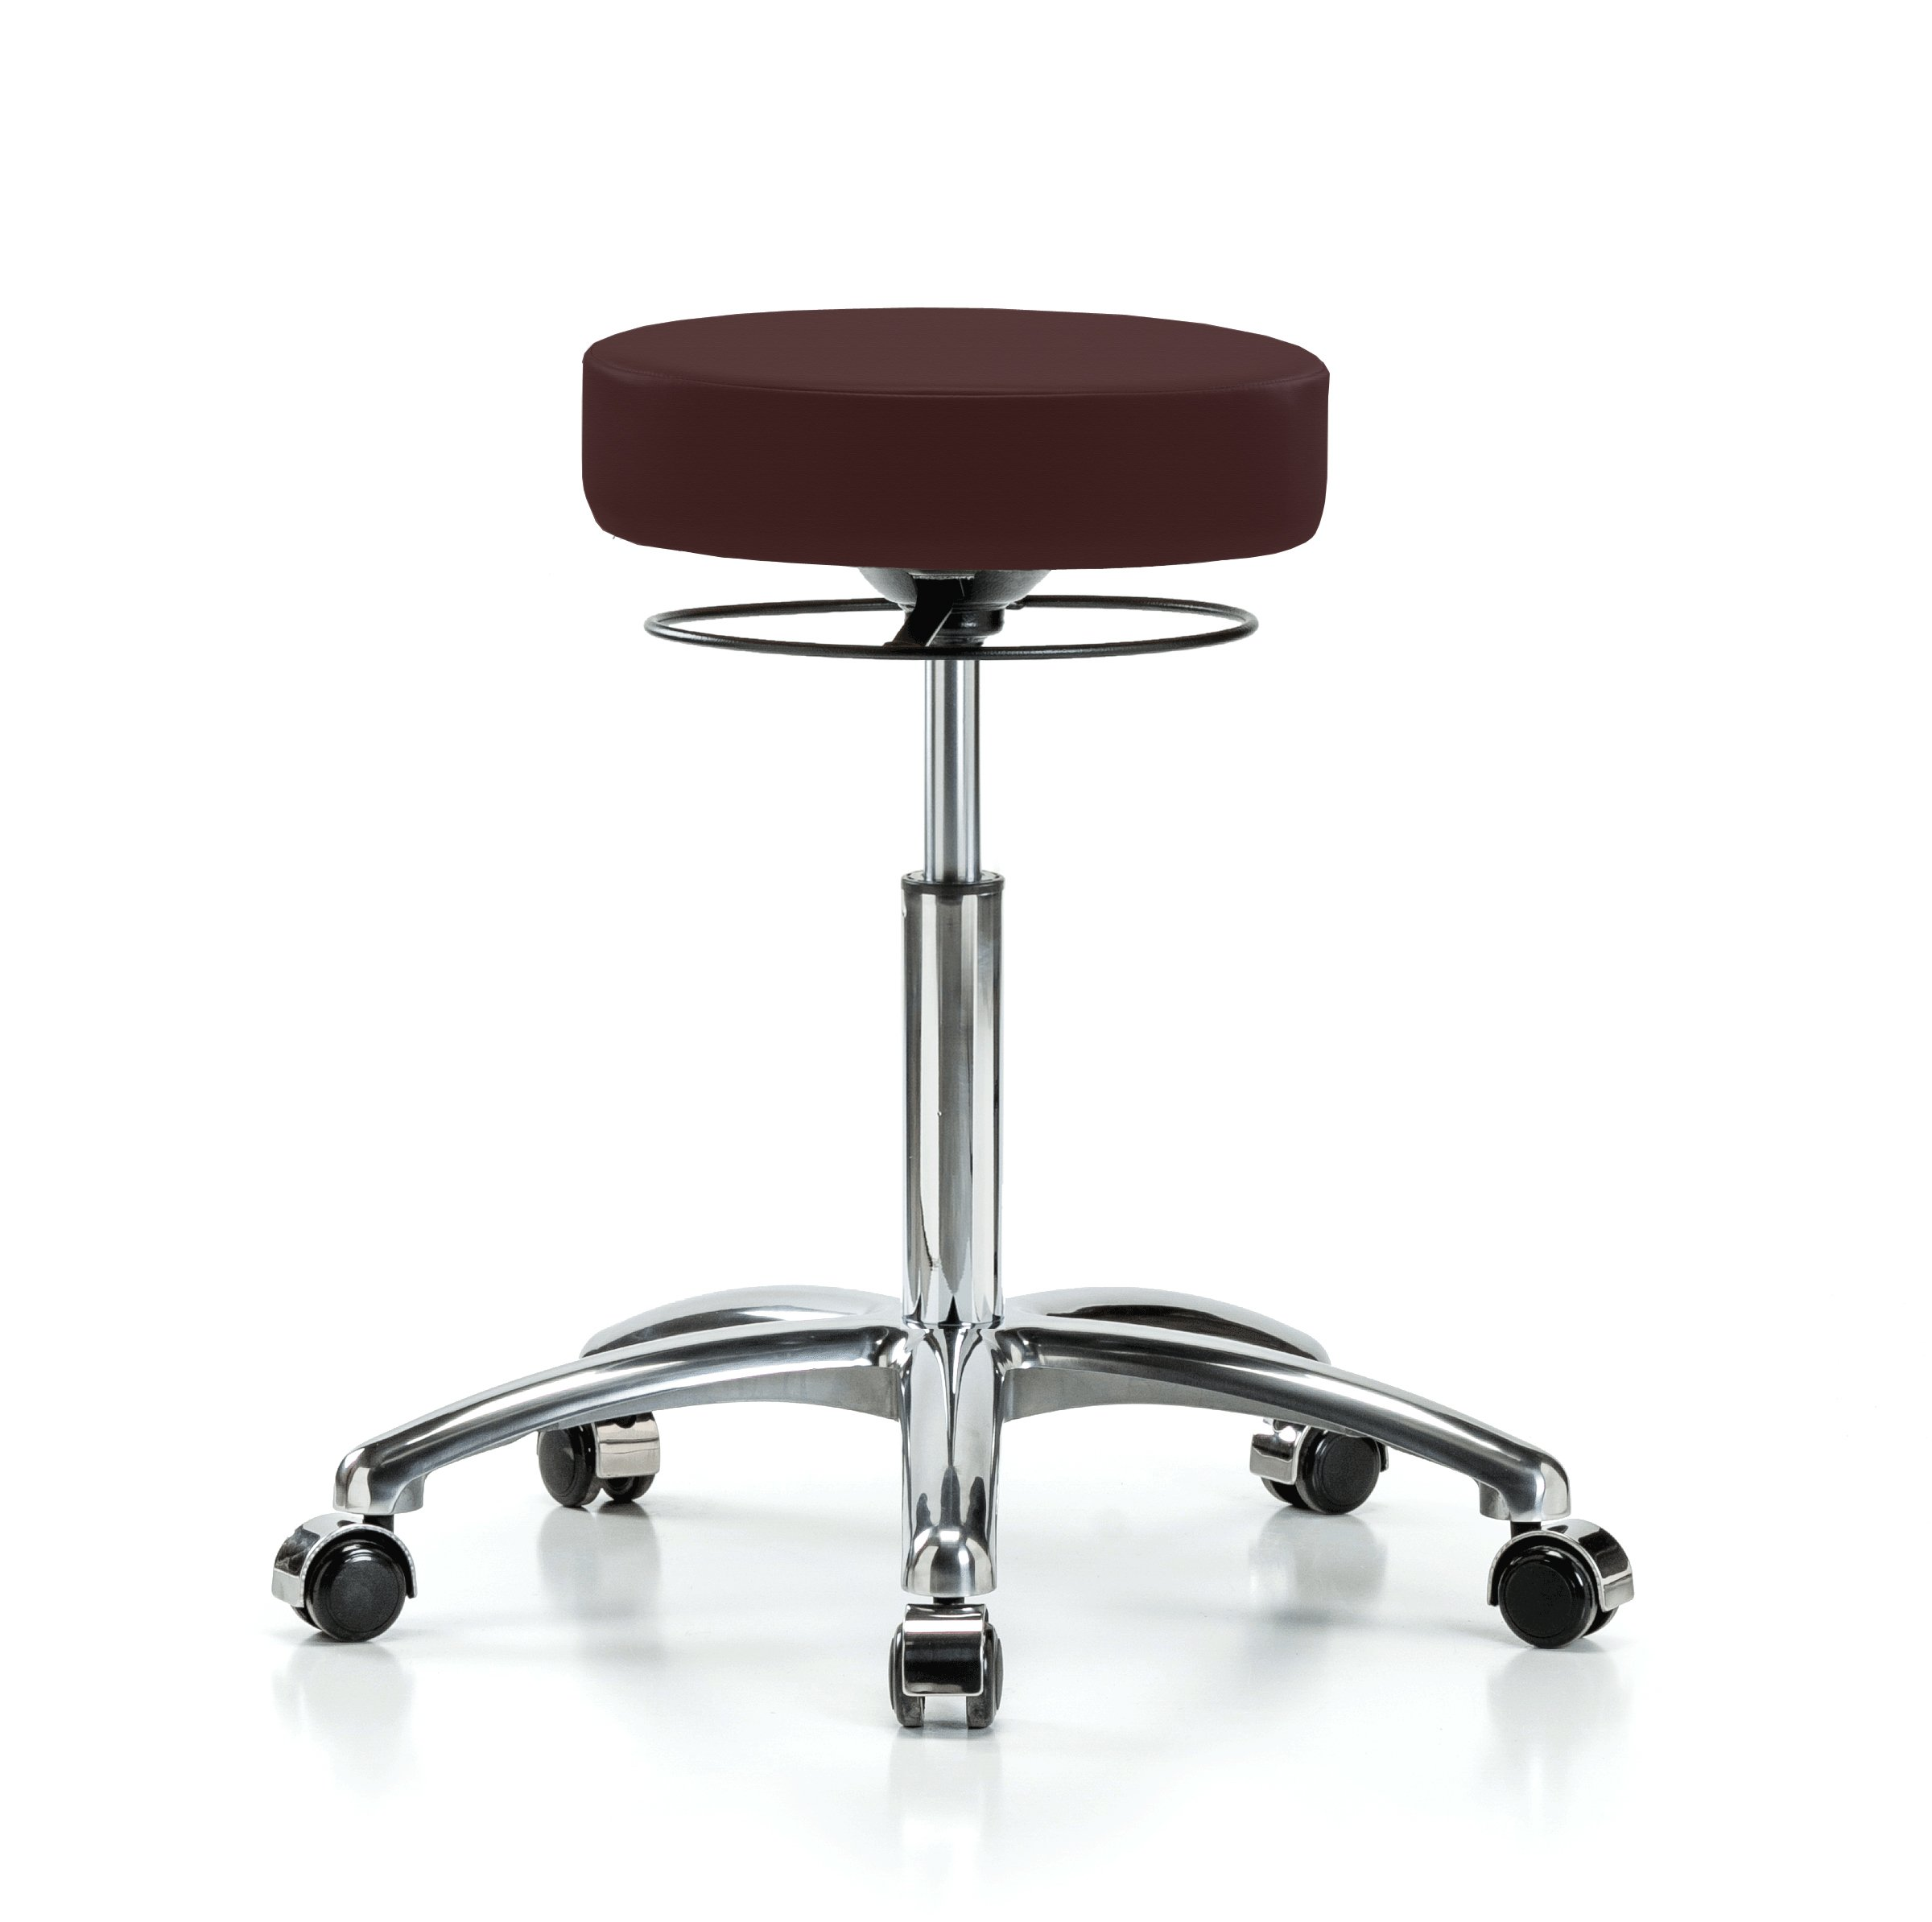 Perch Chrome Stella Rolling Adjustable Stool Medical Salon Spa Massage Tattoo Office 21'' - 28.5'' (Stationary Caps/Burgundy Fabric)